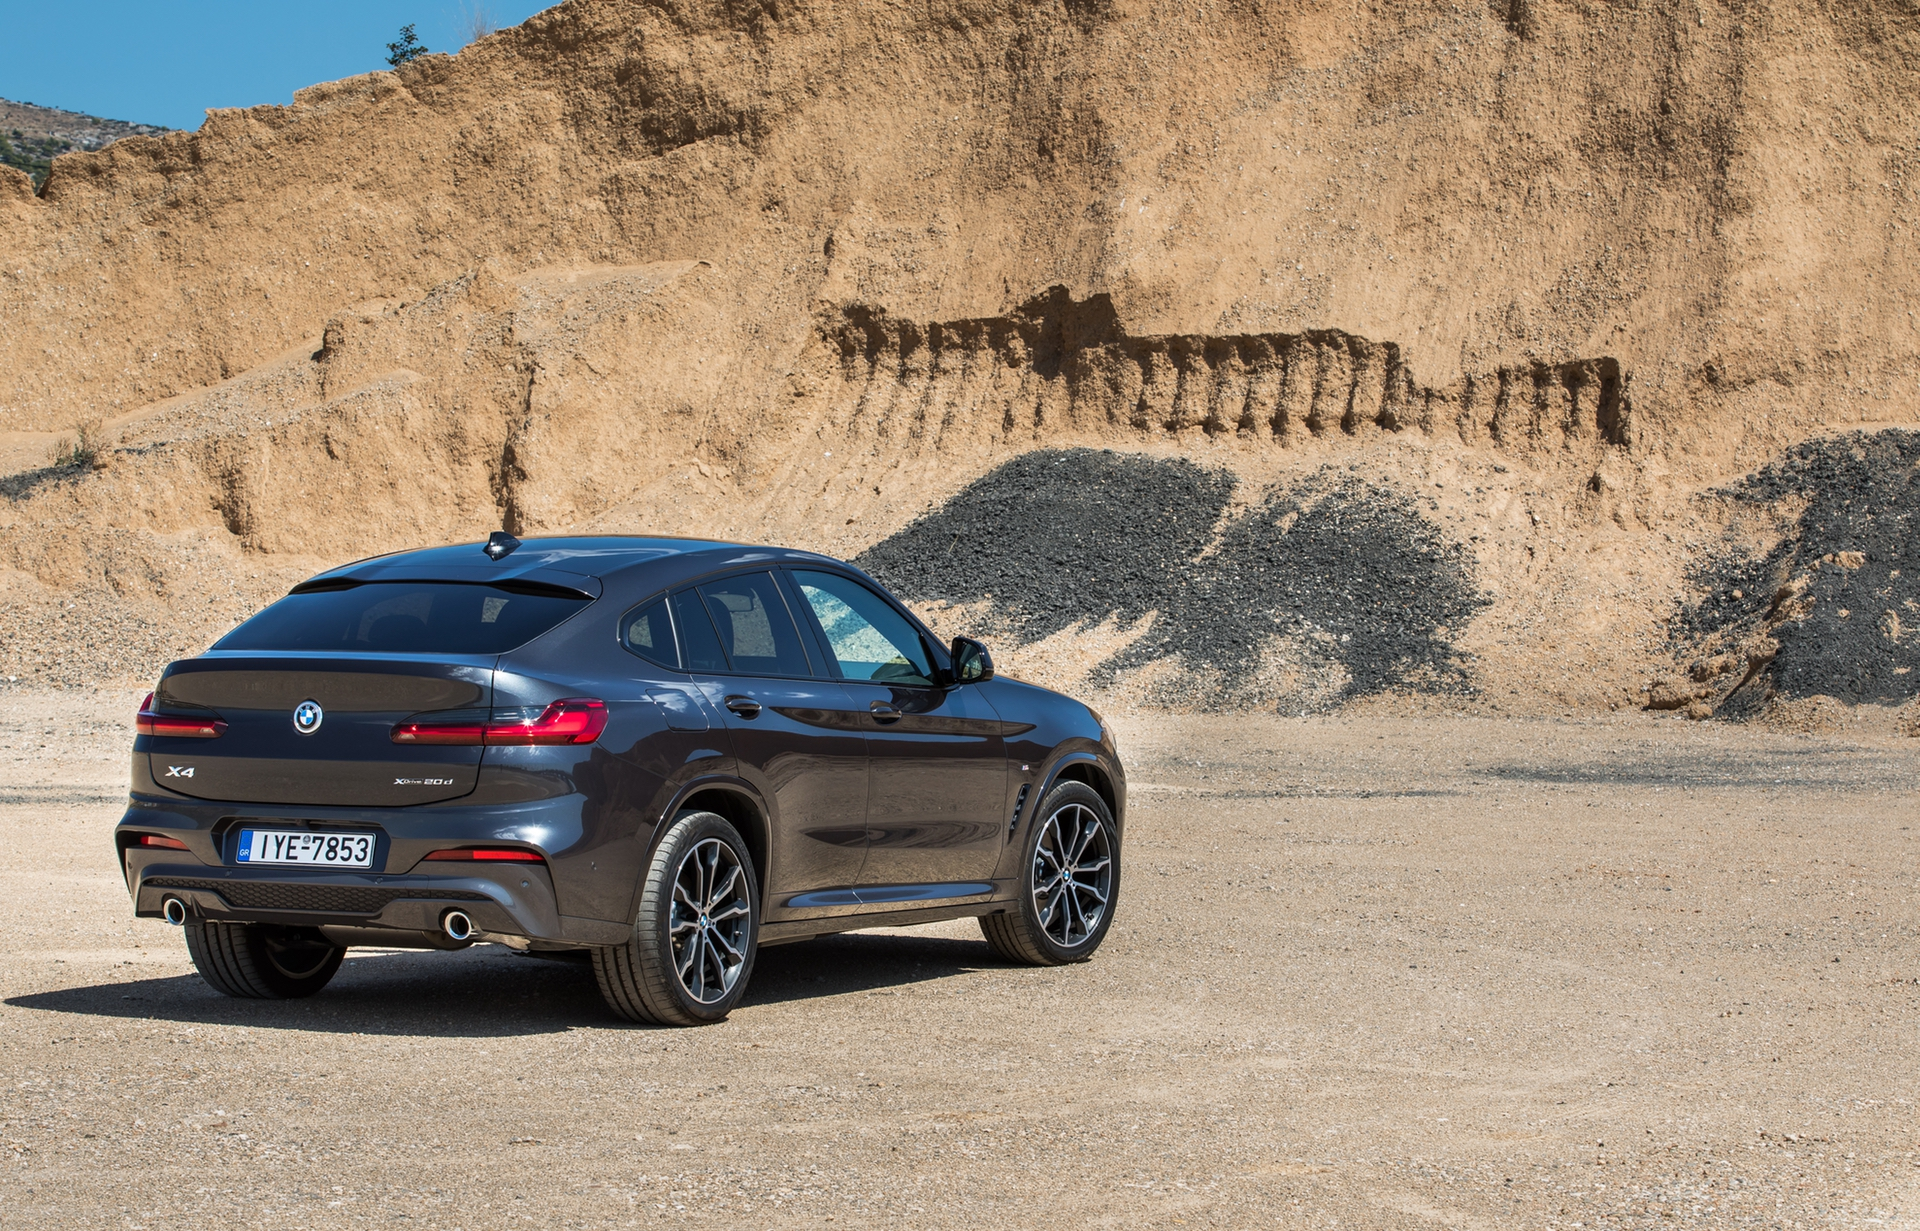 BMW_X4_greek_presskit_0060